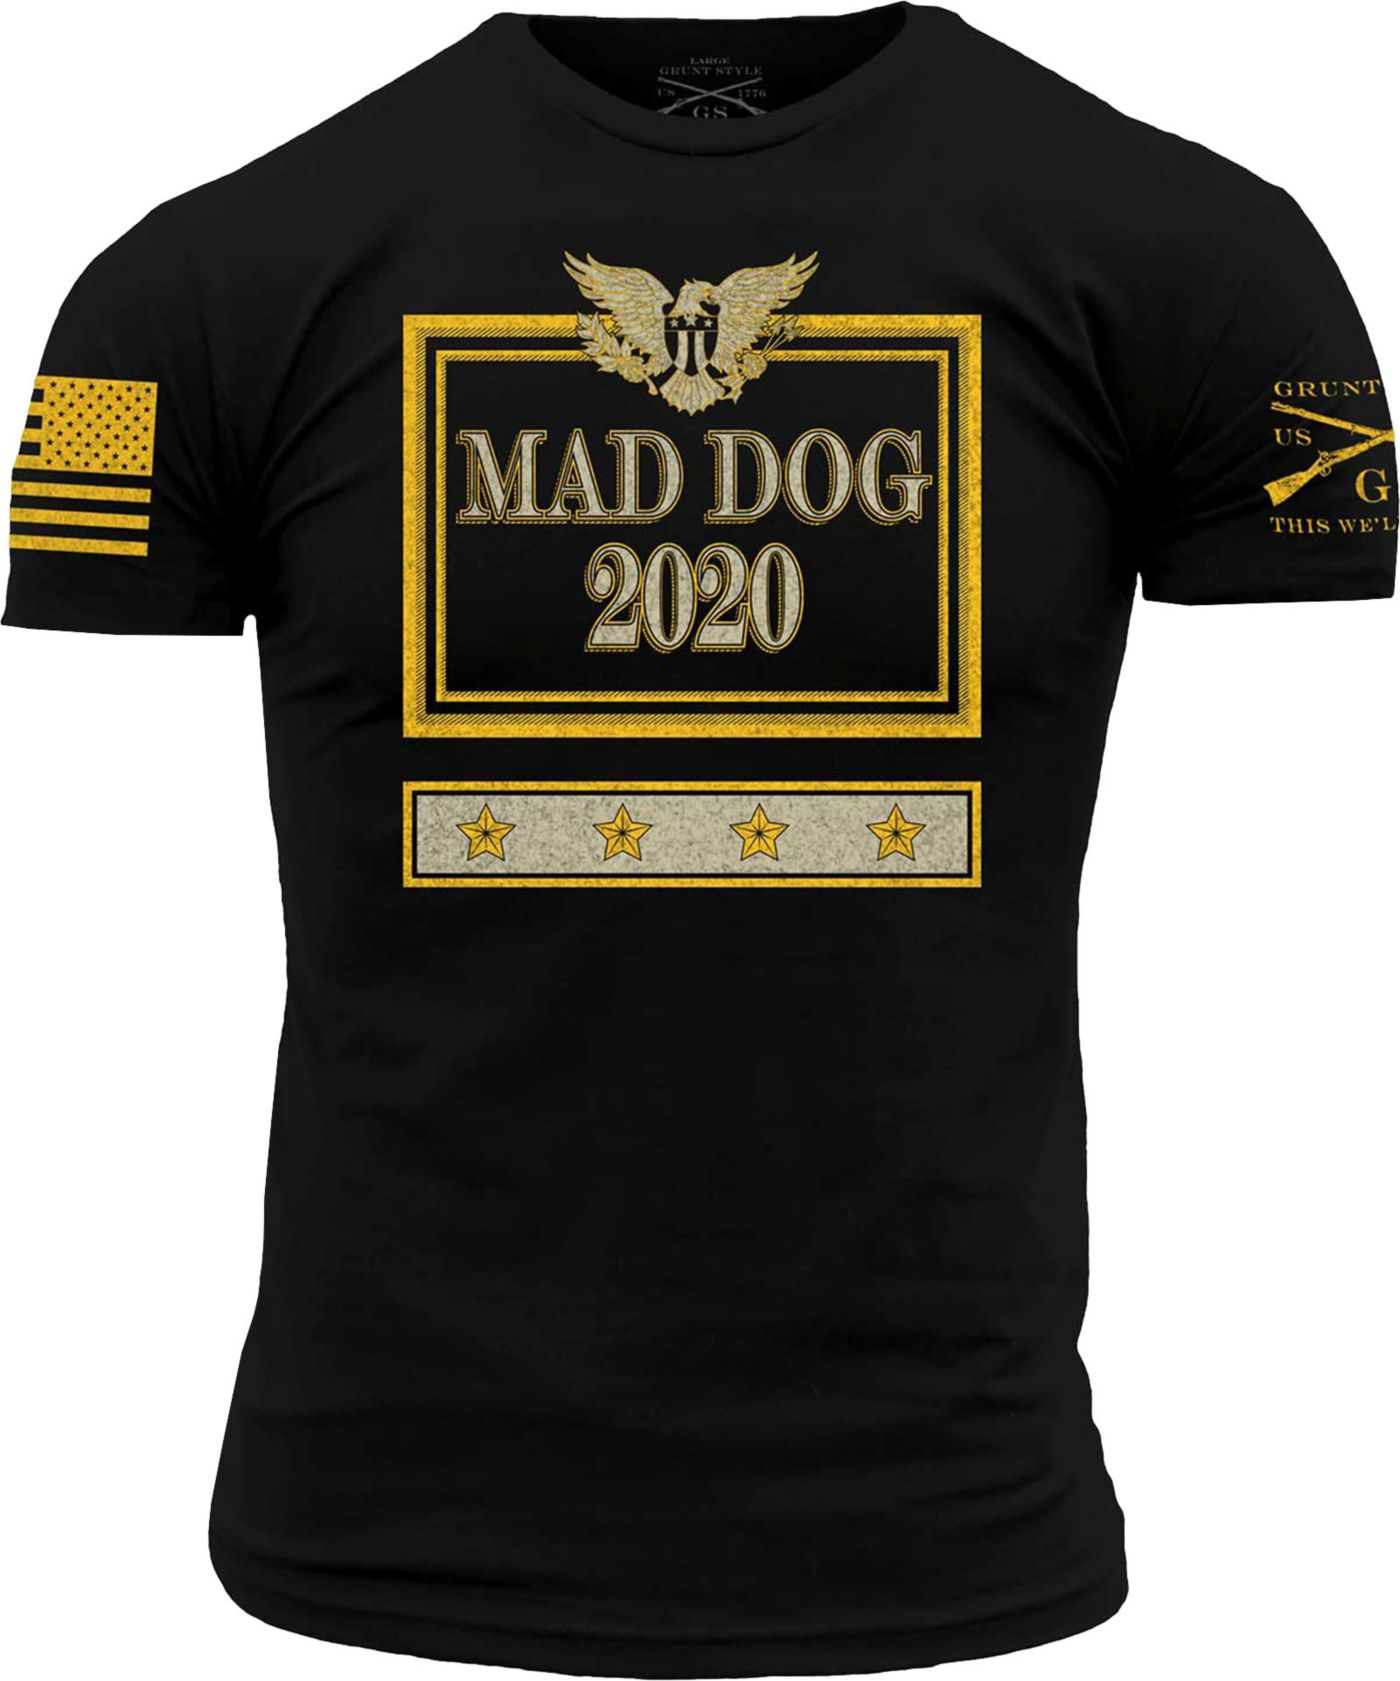 Grunt Style Men's Mad Dog 2020 Short Sleeve T-Shirt